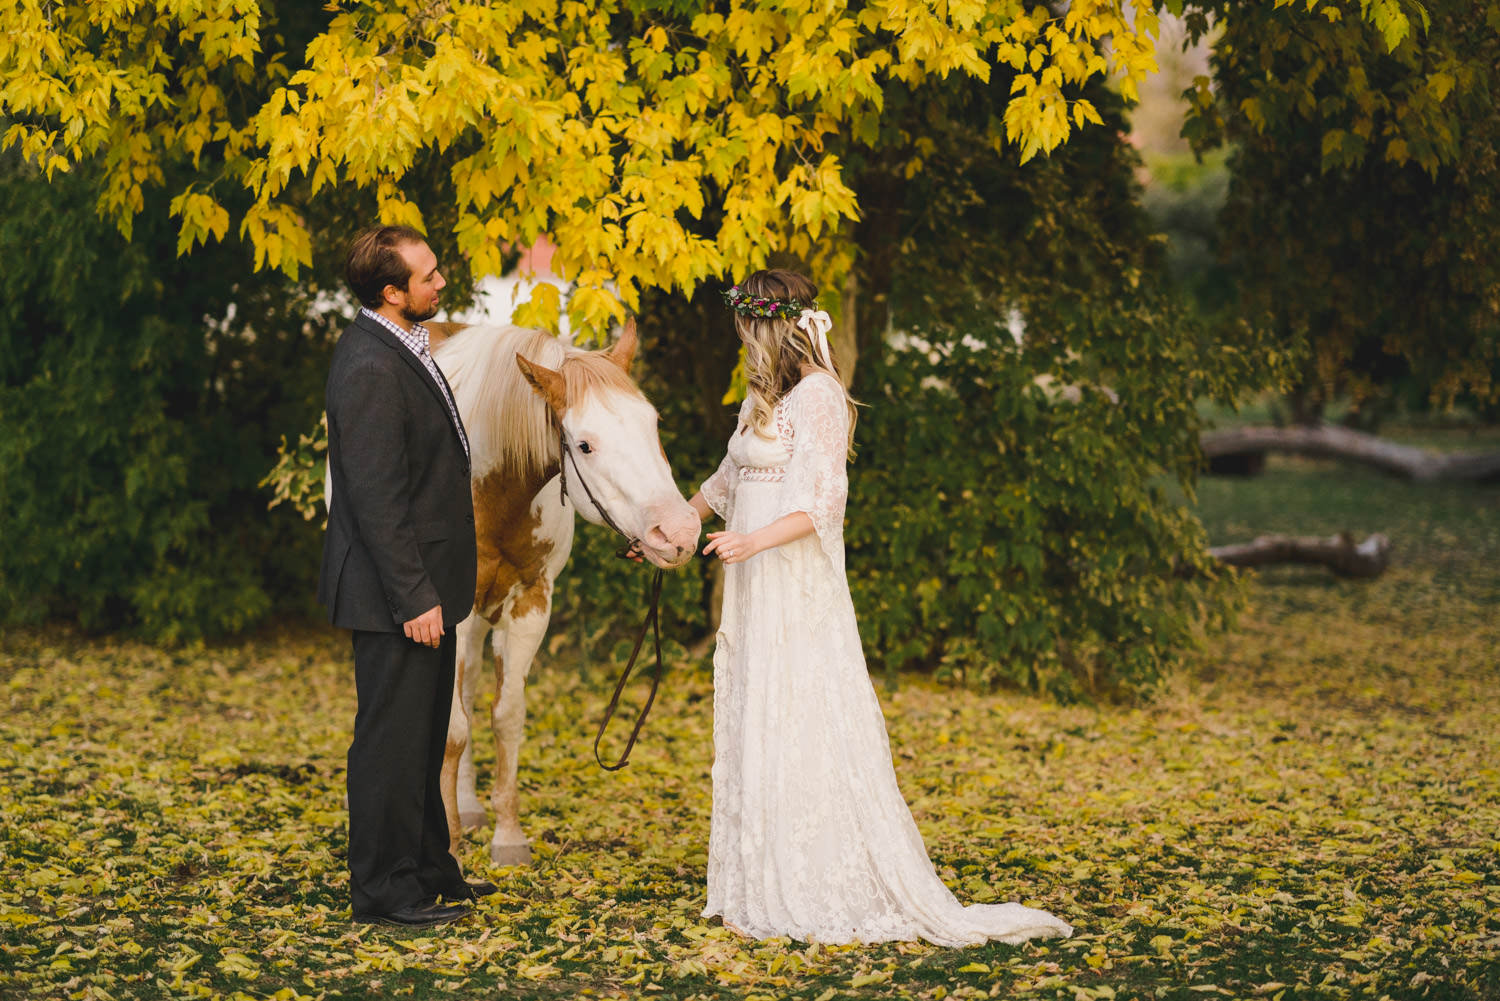 Equestrian bridal session couple with horse in fall leaves photo